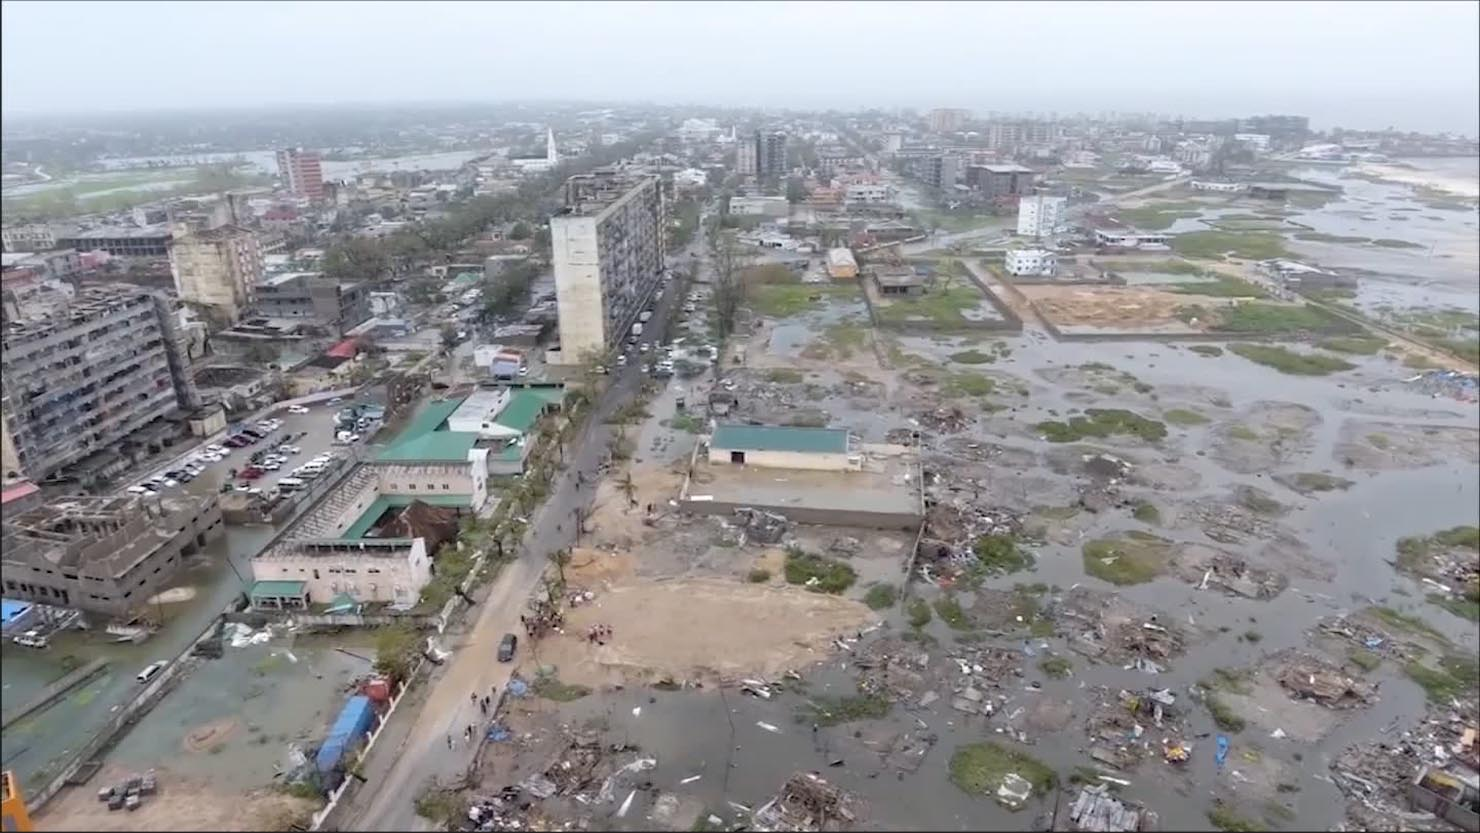 Cyclones in Mozambique – Blueprint for Climate Change